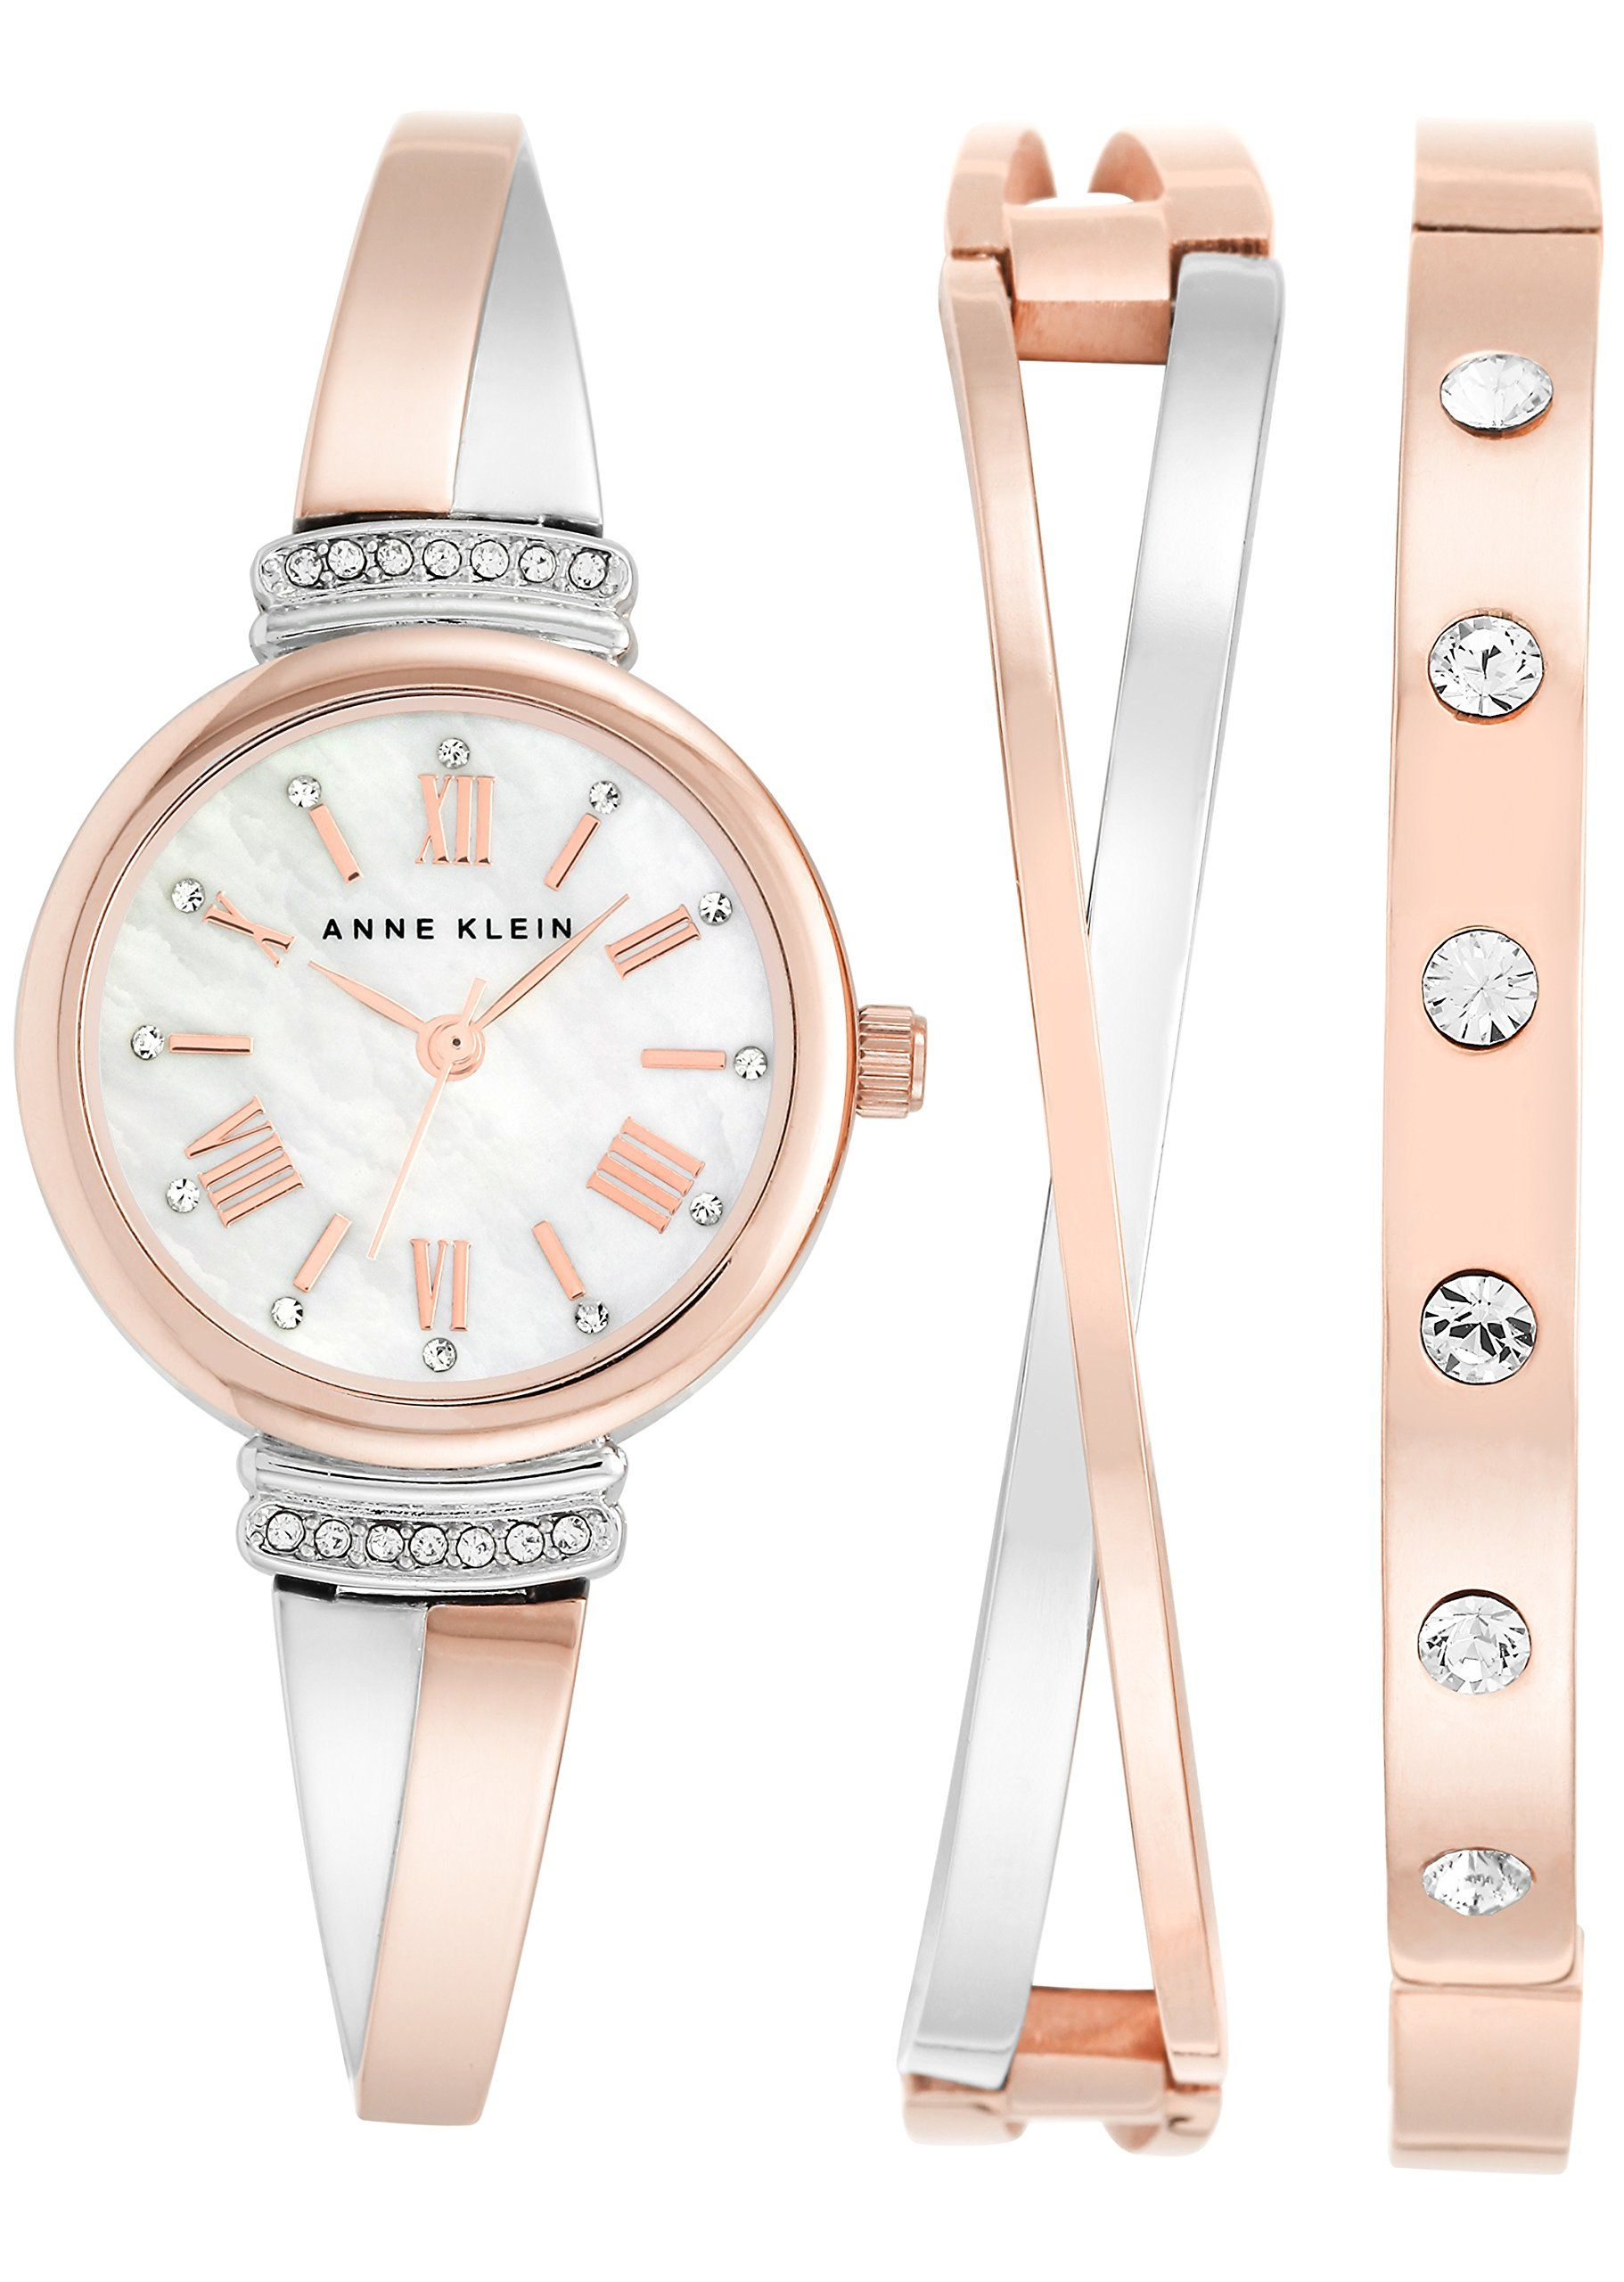 47a309b115a Anne Klein Women's AK/2245RTST Swarovski Crystal Accented Rose Gold-Tone  and Silver-